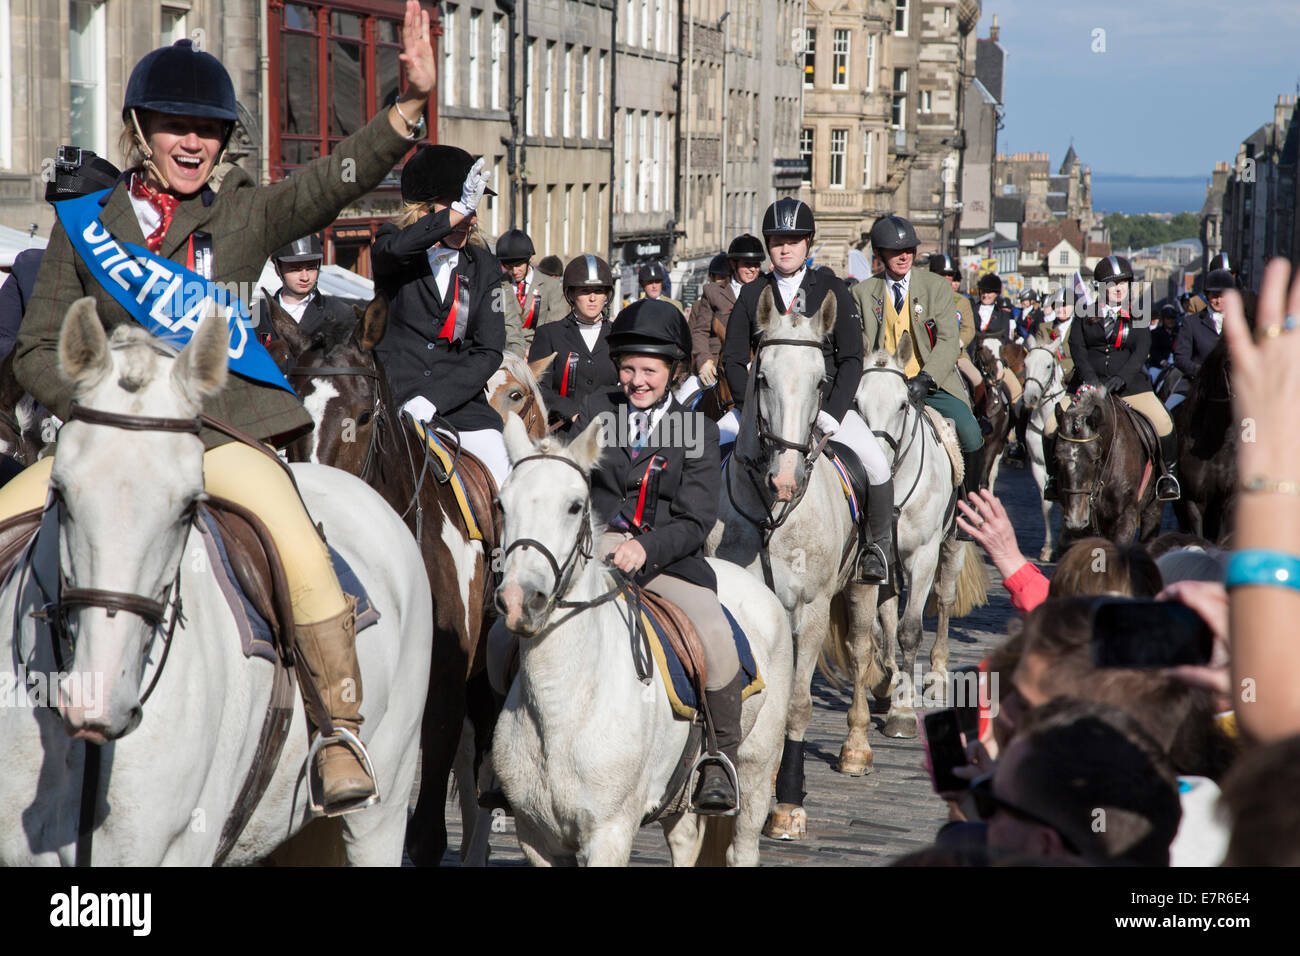 A woman on a horse waving to people in the crowd on the Royal Mile, Edinburgh before the annual Riding of the Marches Stock Photo